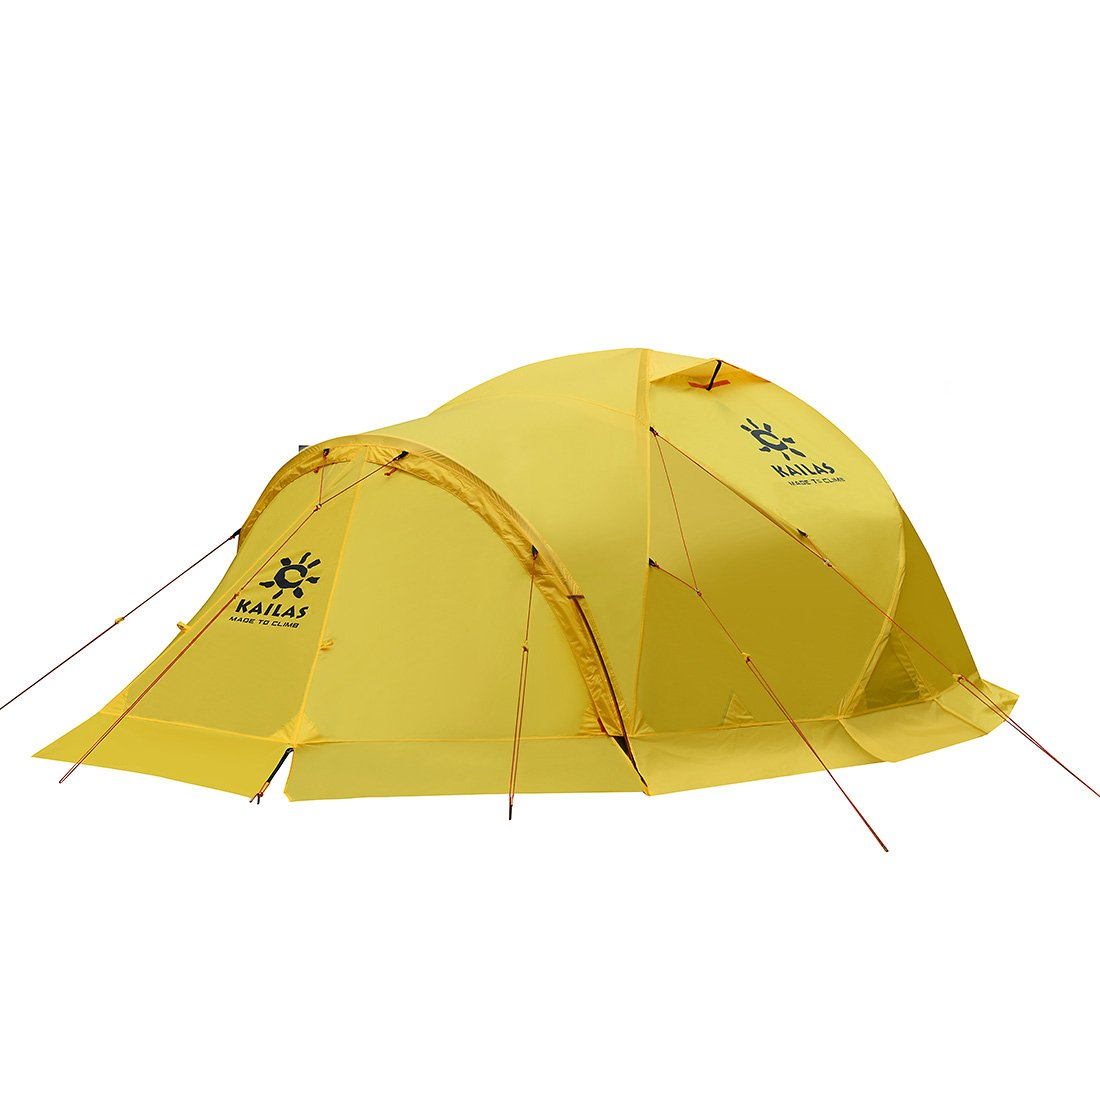 KAILAS X3 Alpine Tent Lightweight for Polar Region Alpine Extreme Condition Backpacking Camping (3-4 Person)